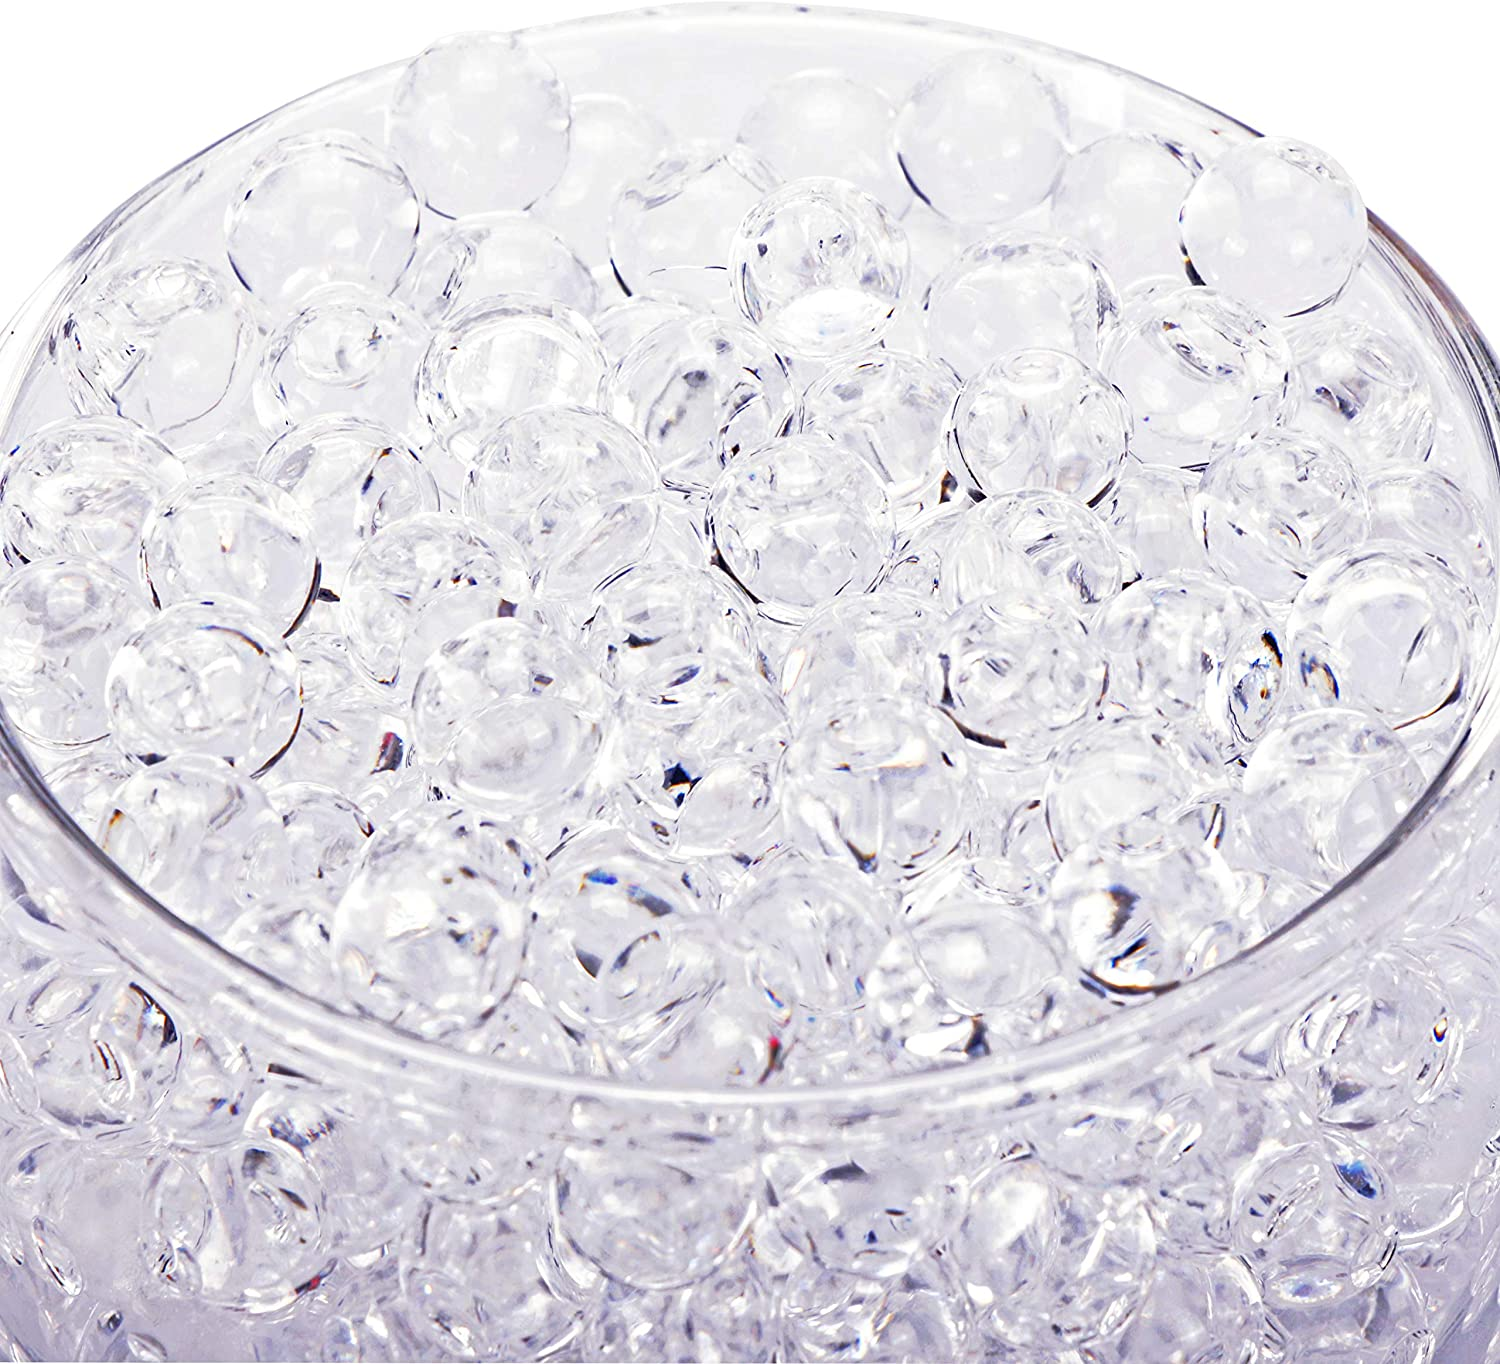 Bymore 60000 Clear Water Gel Jelly Beads Vase Fillers for Floating Pearls, Floating Candle Making, Wedding Centerpiece, Floral Arrangement